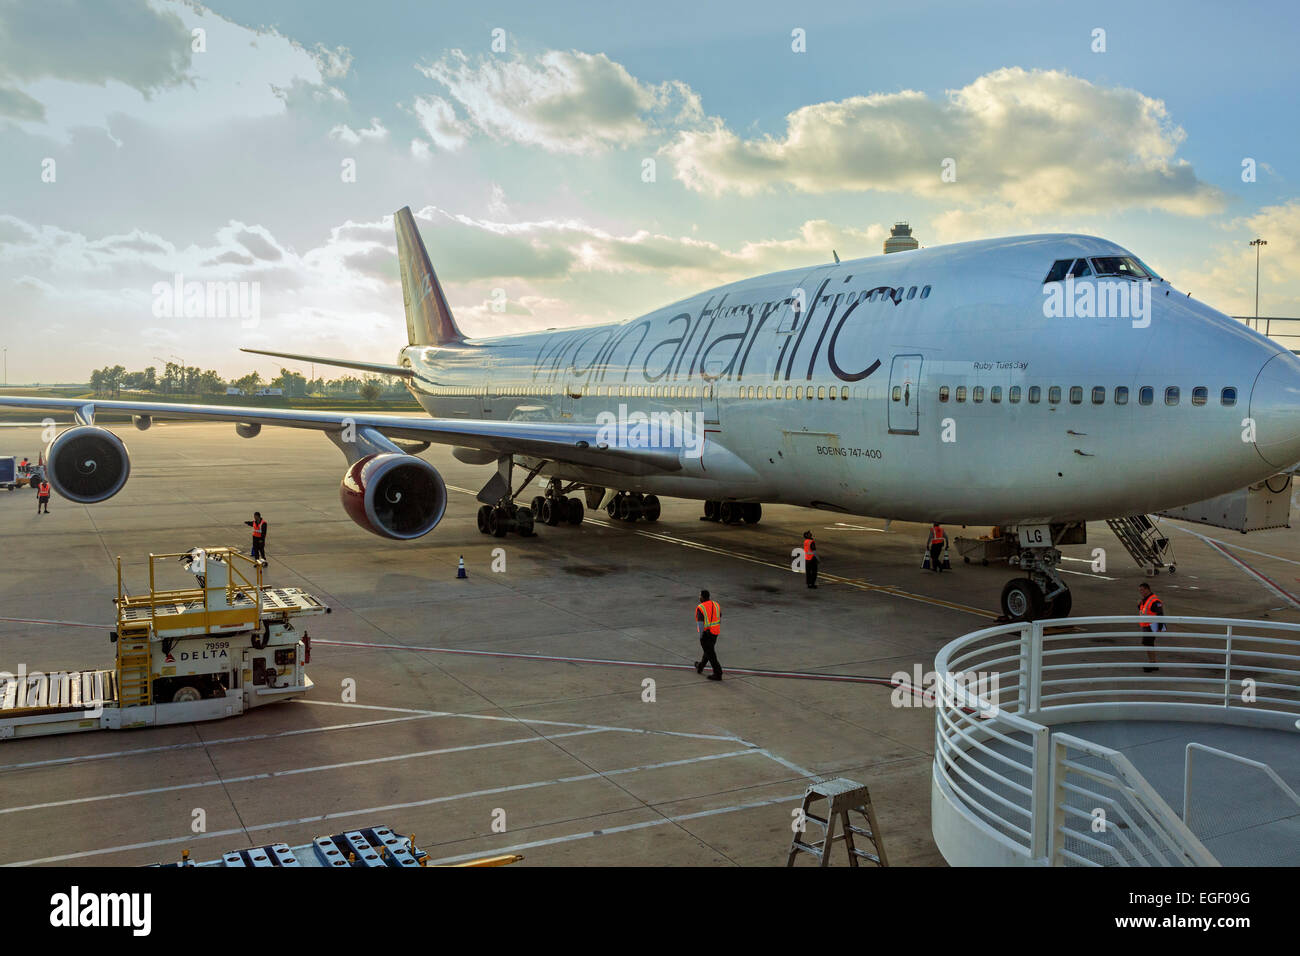 Virgin Atlantic Boeing 747 being loaded at Orlando Airport, Florida, America - Stock Image